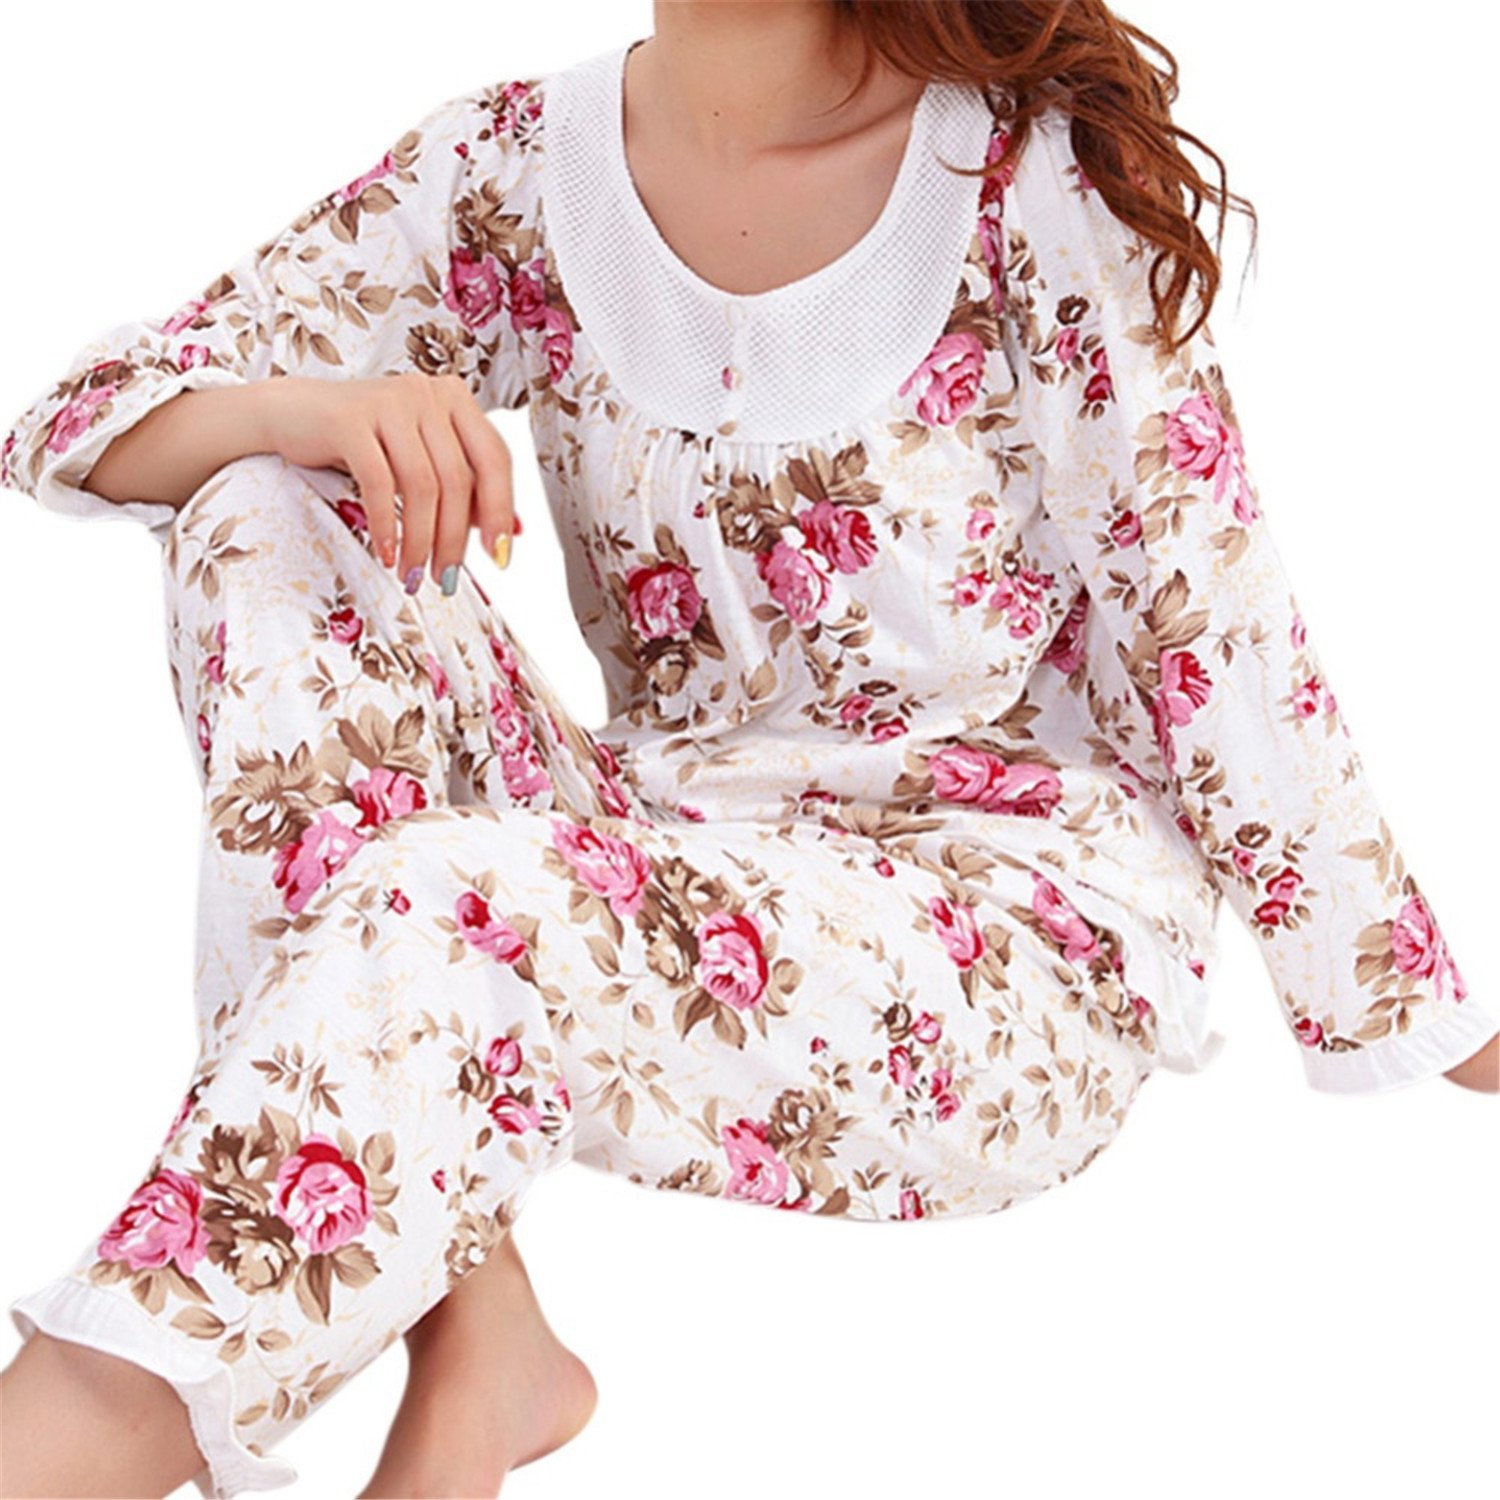 RENXINGLI Women Pajamas Set Pyjamas Floral Print Sleepwear Homewear Nightgown Pijama Mujer at Amazon Womens Clothing store: